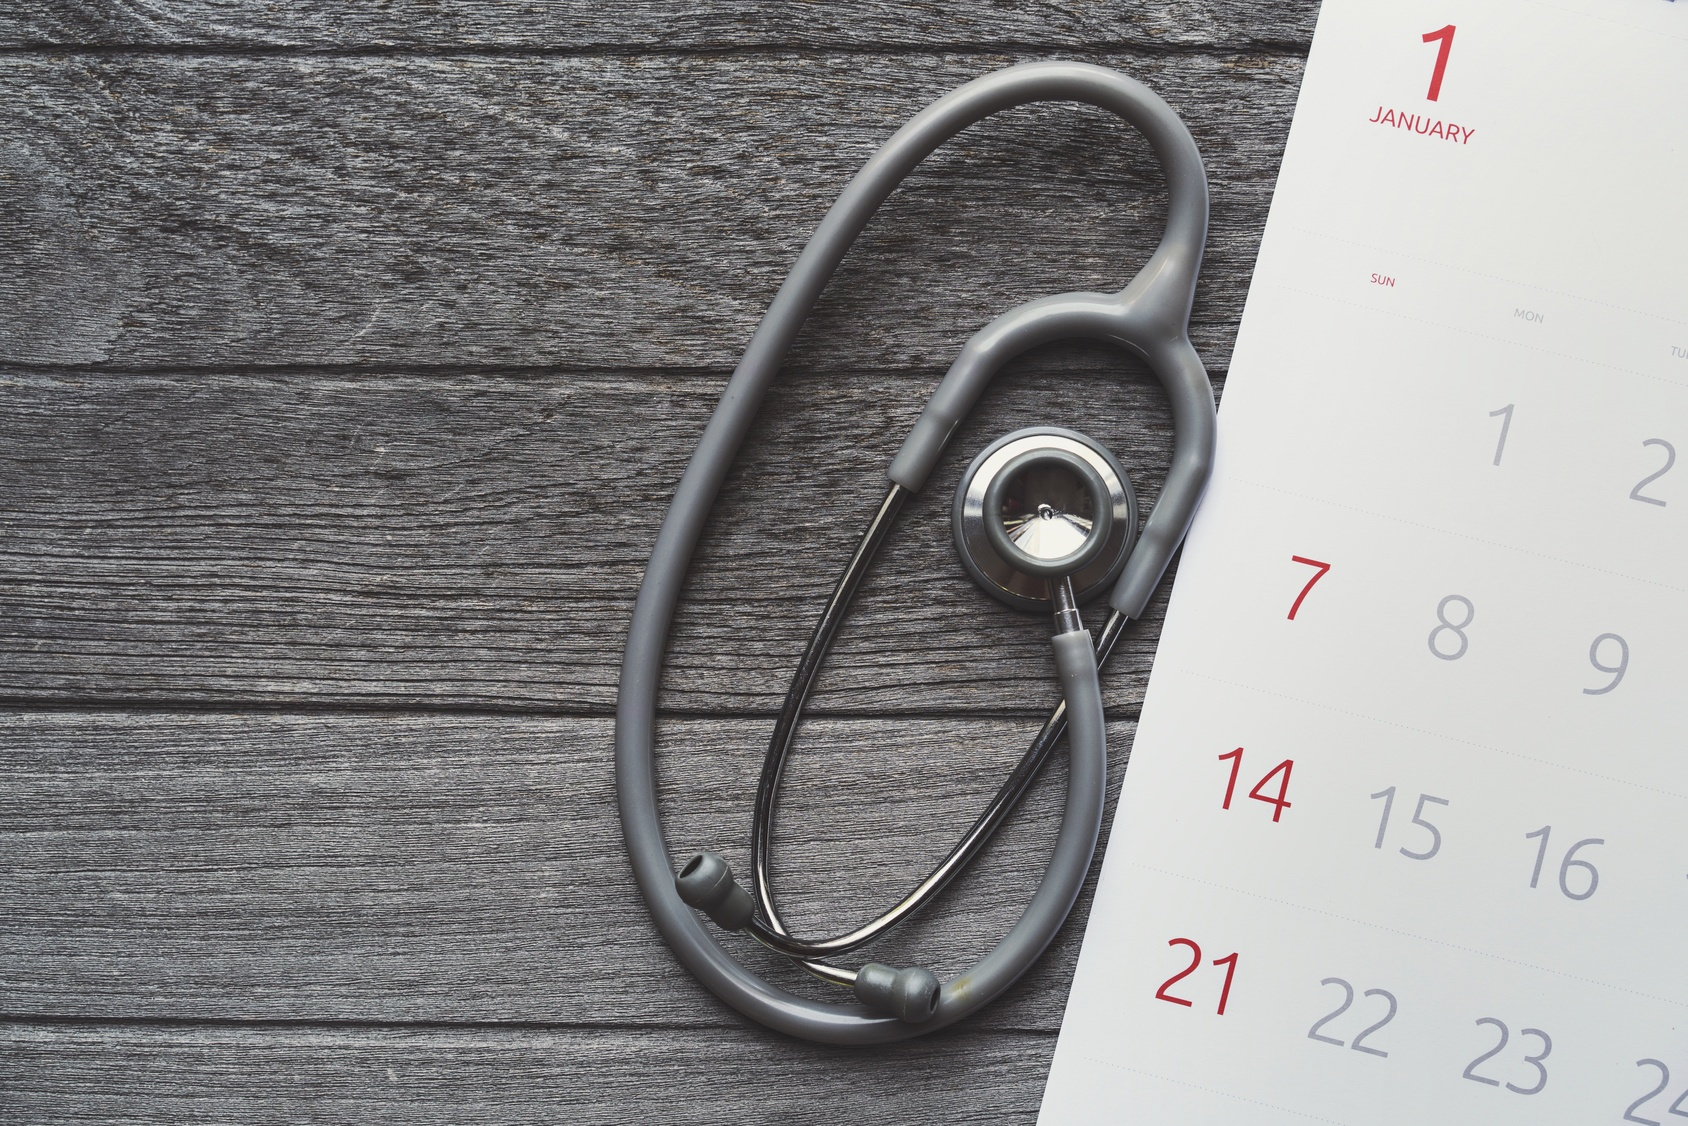 How Effective Are Health Reminders in Improving Patient Health Outcomes?